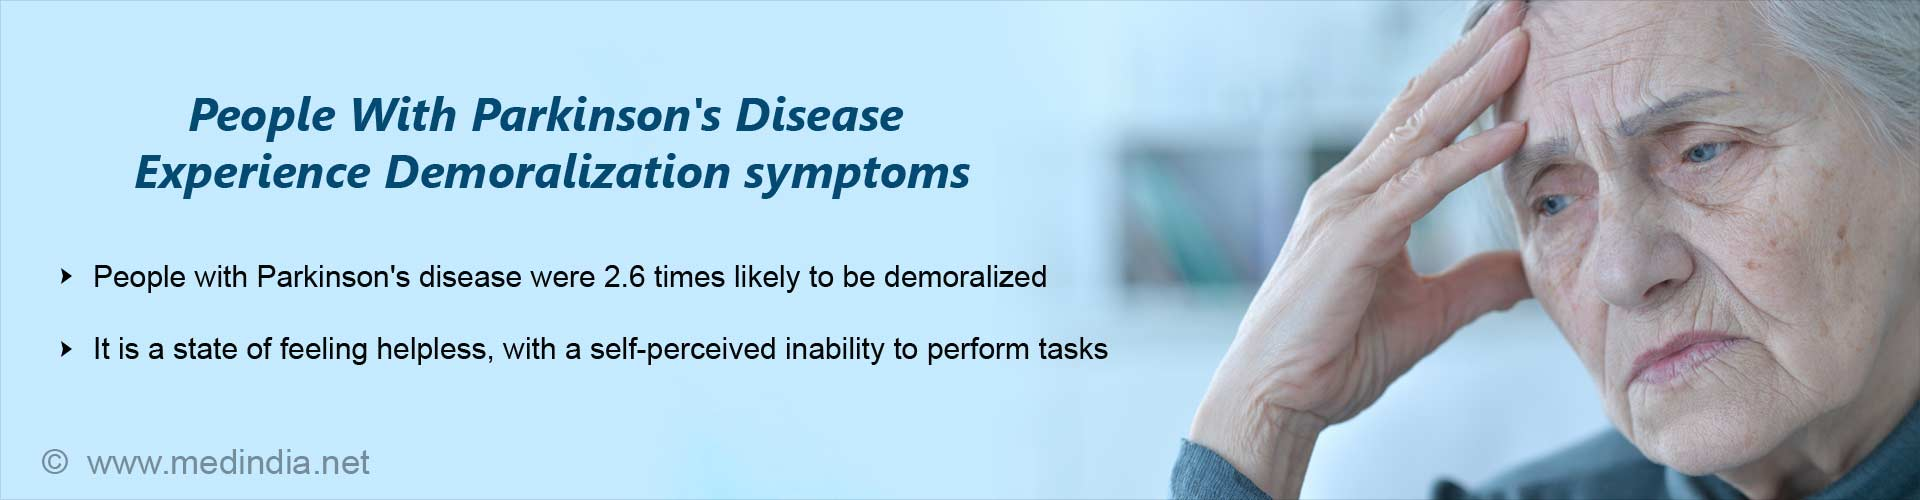 Do People With Parkinson''s Disease Experience Symptoms of Demoralization?